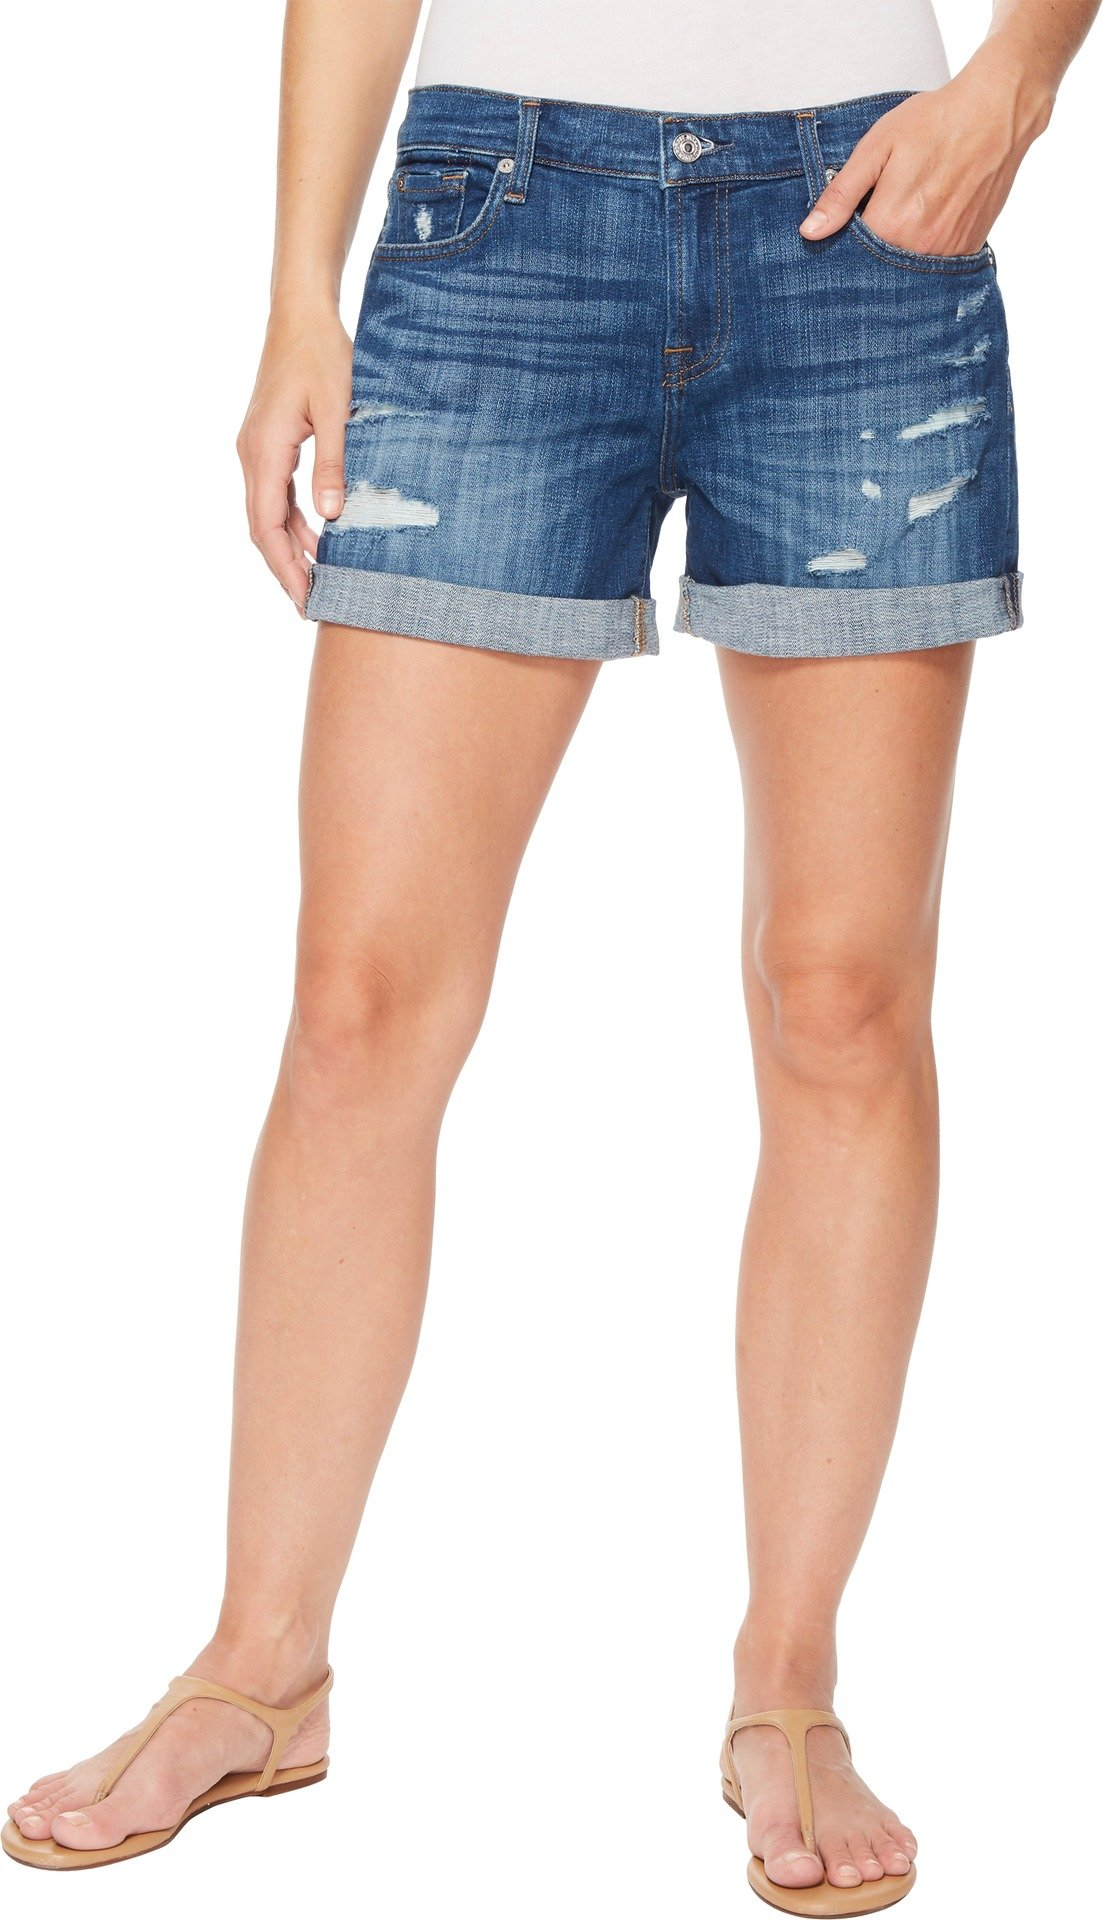 7 For All Mankind Women's Mid Roll Shorts w/Destroy in Broken Twills Desert Trails 3 Broken Twills Desert Trails 3 31 4.5